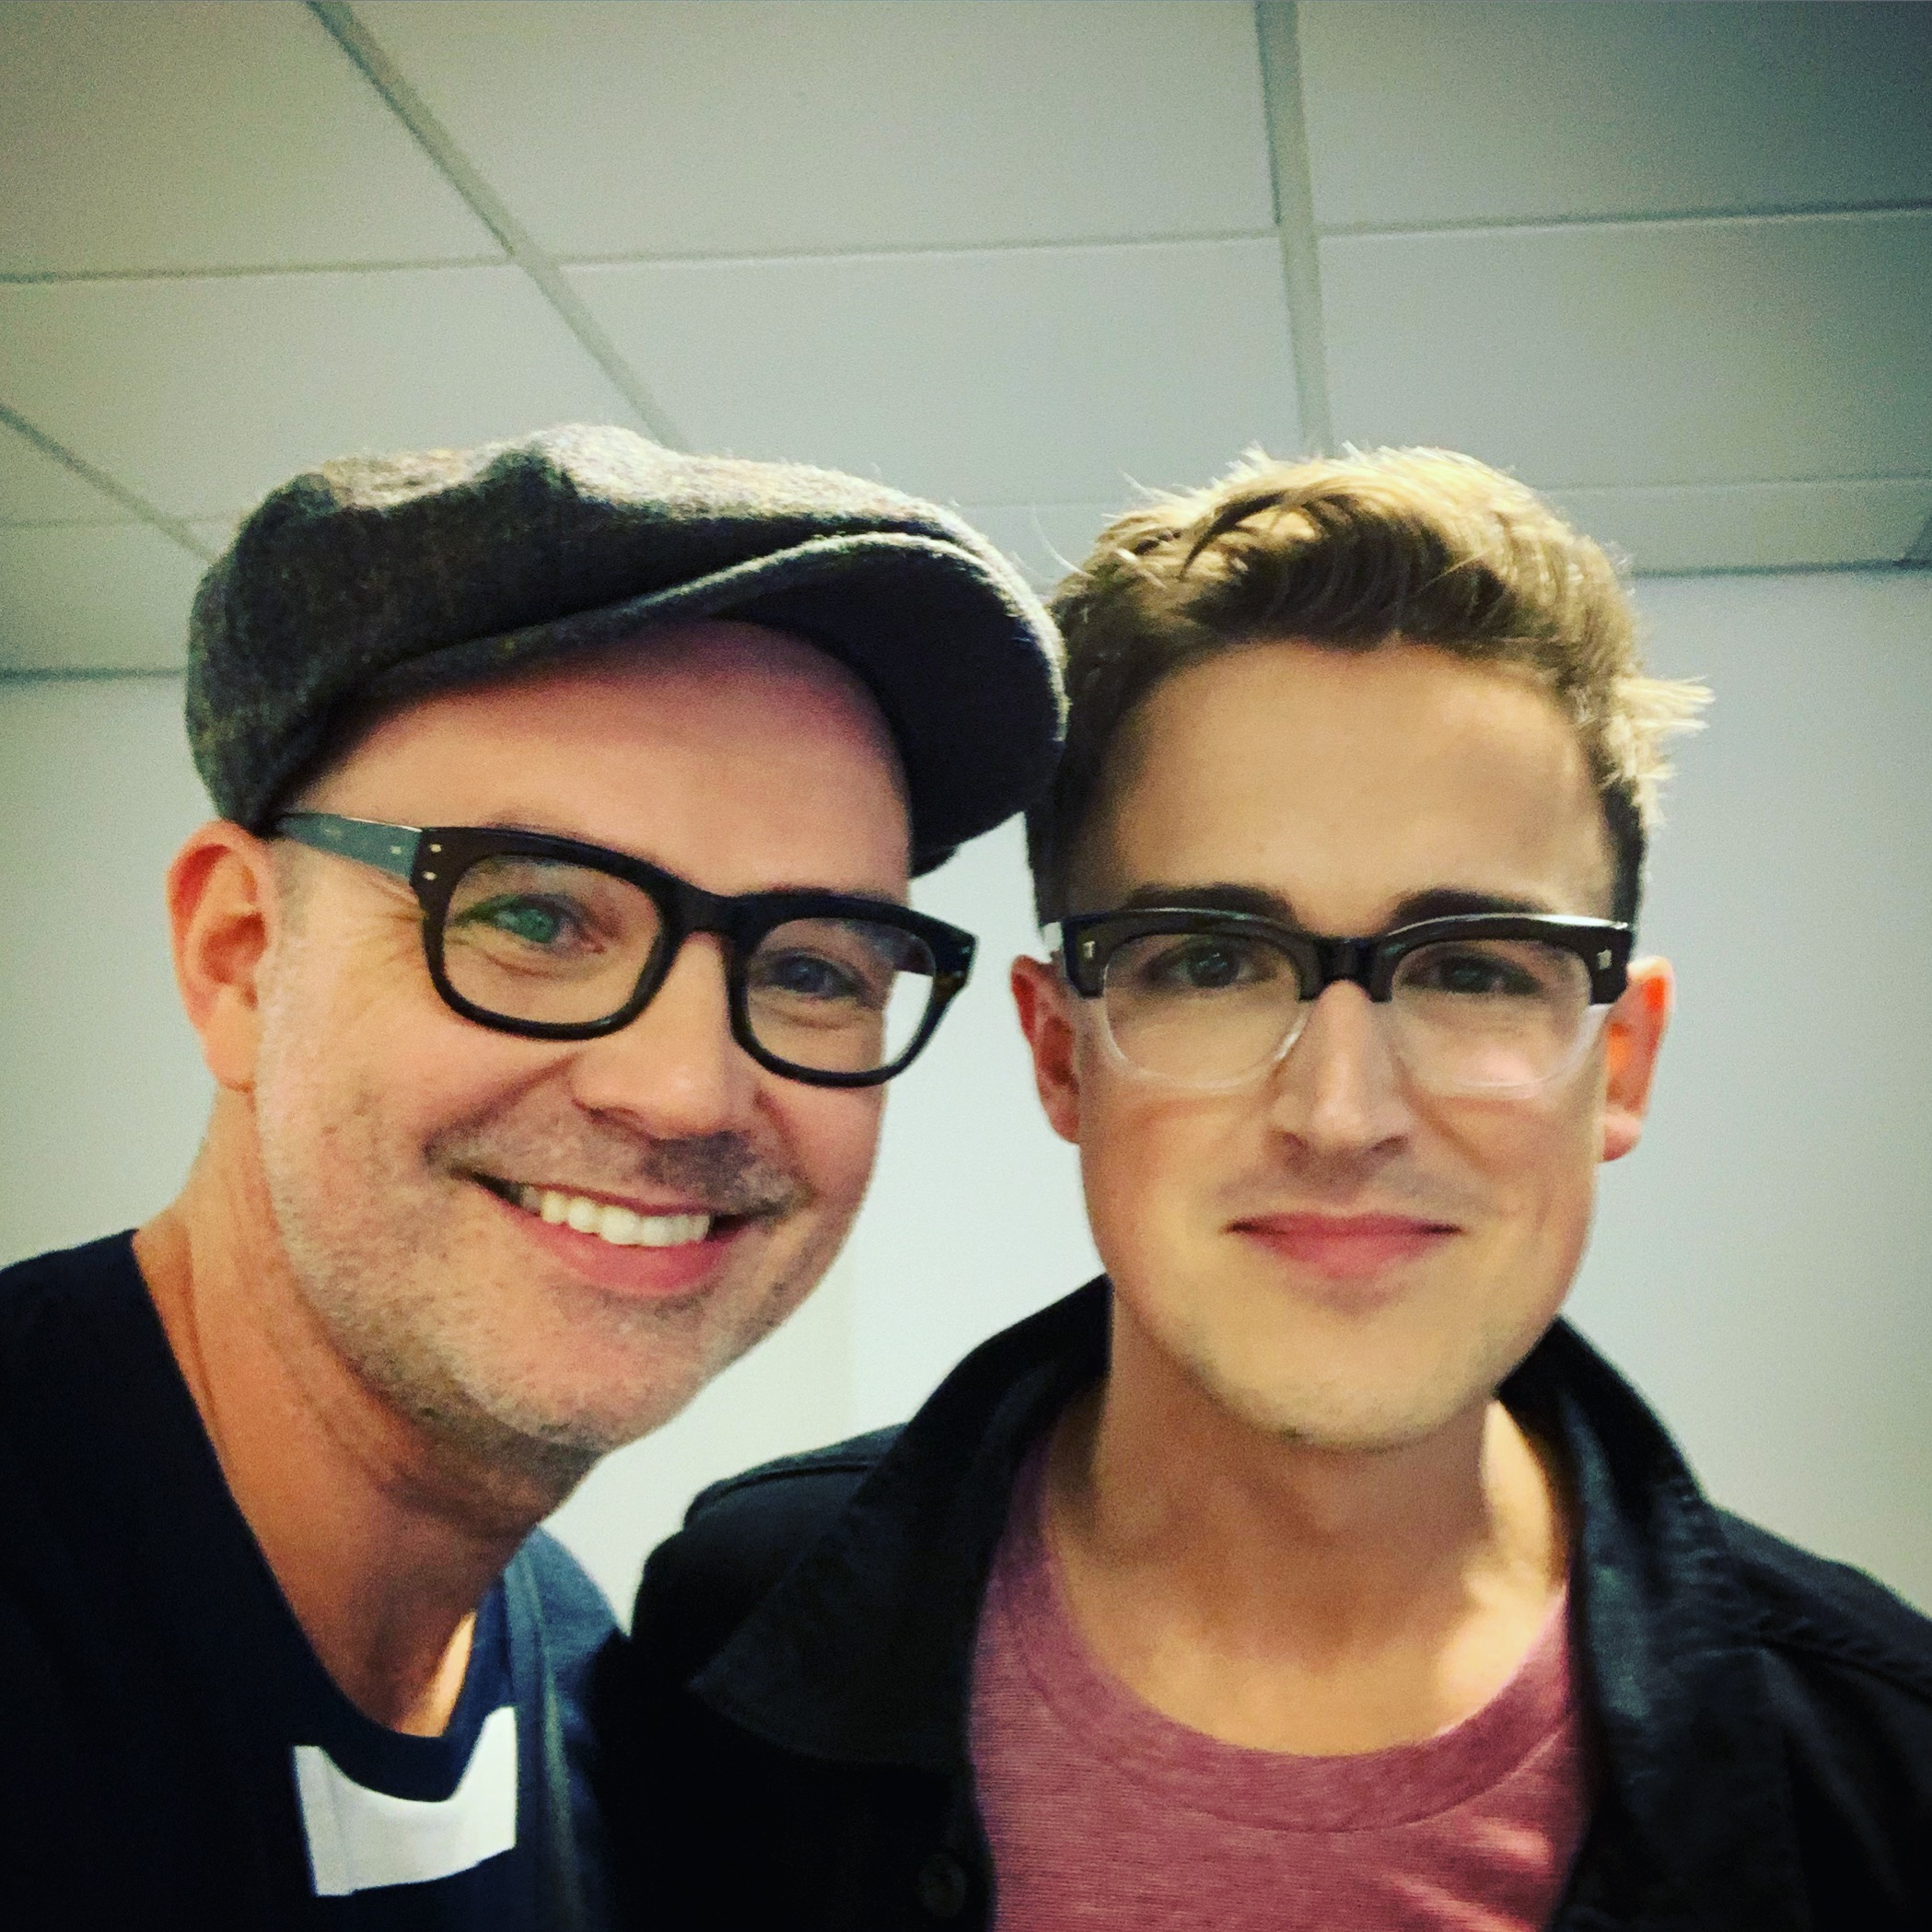 With Tom Fletcher at our World Book Day event